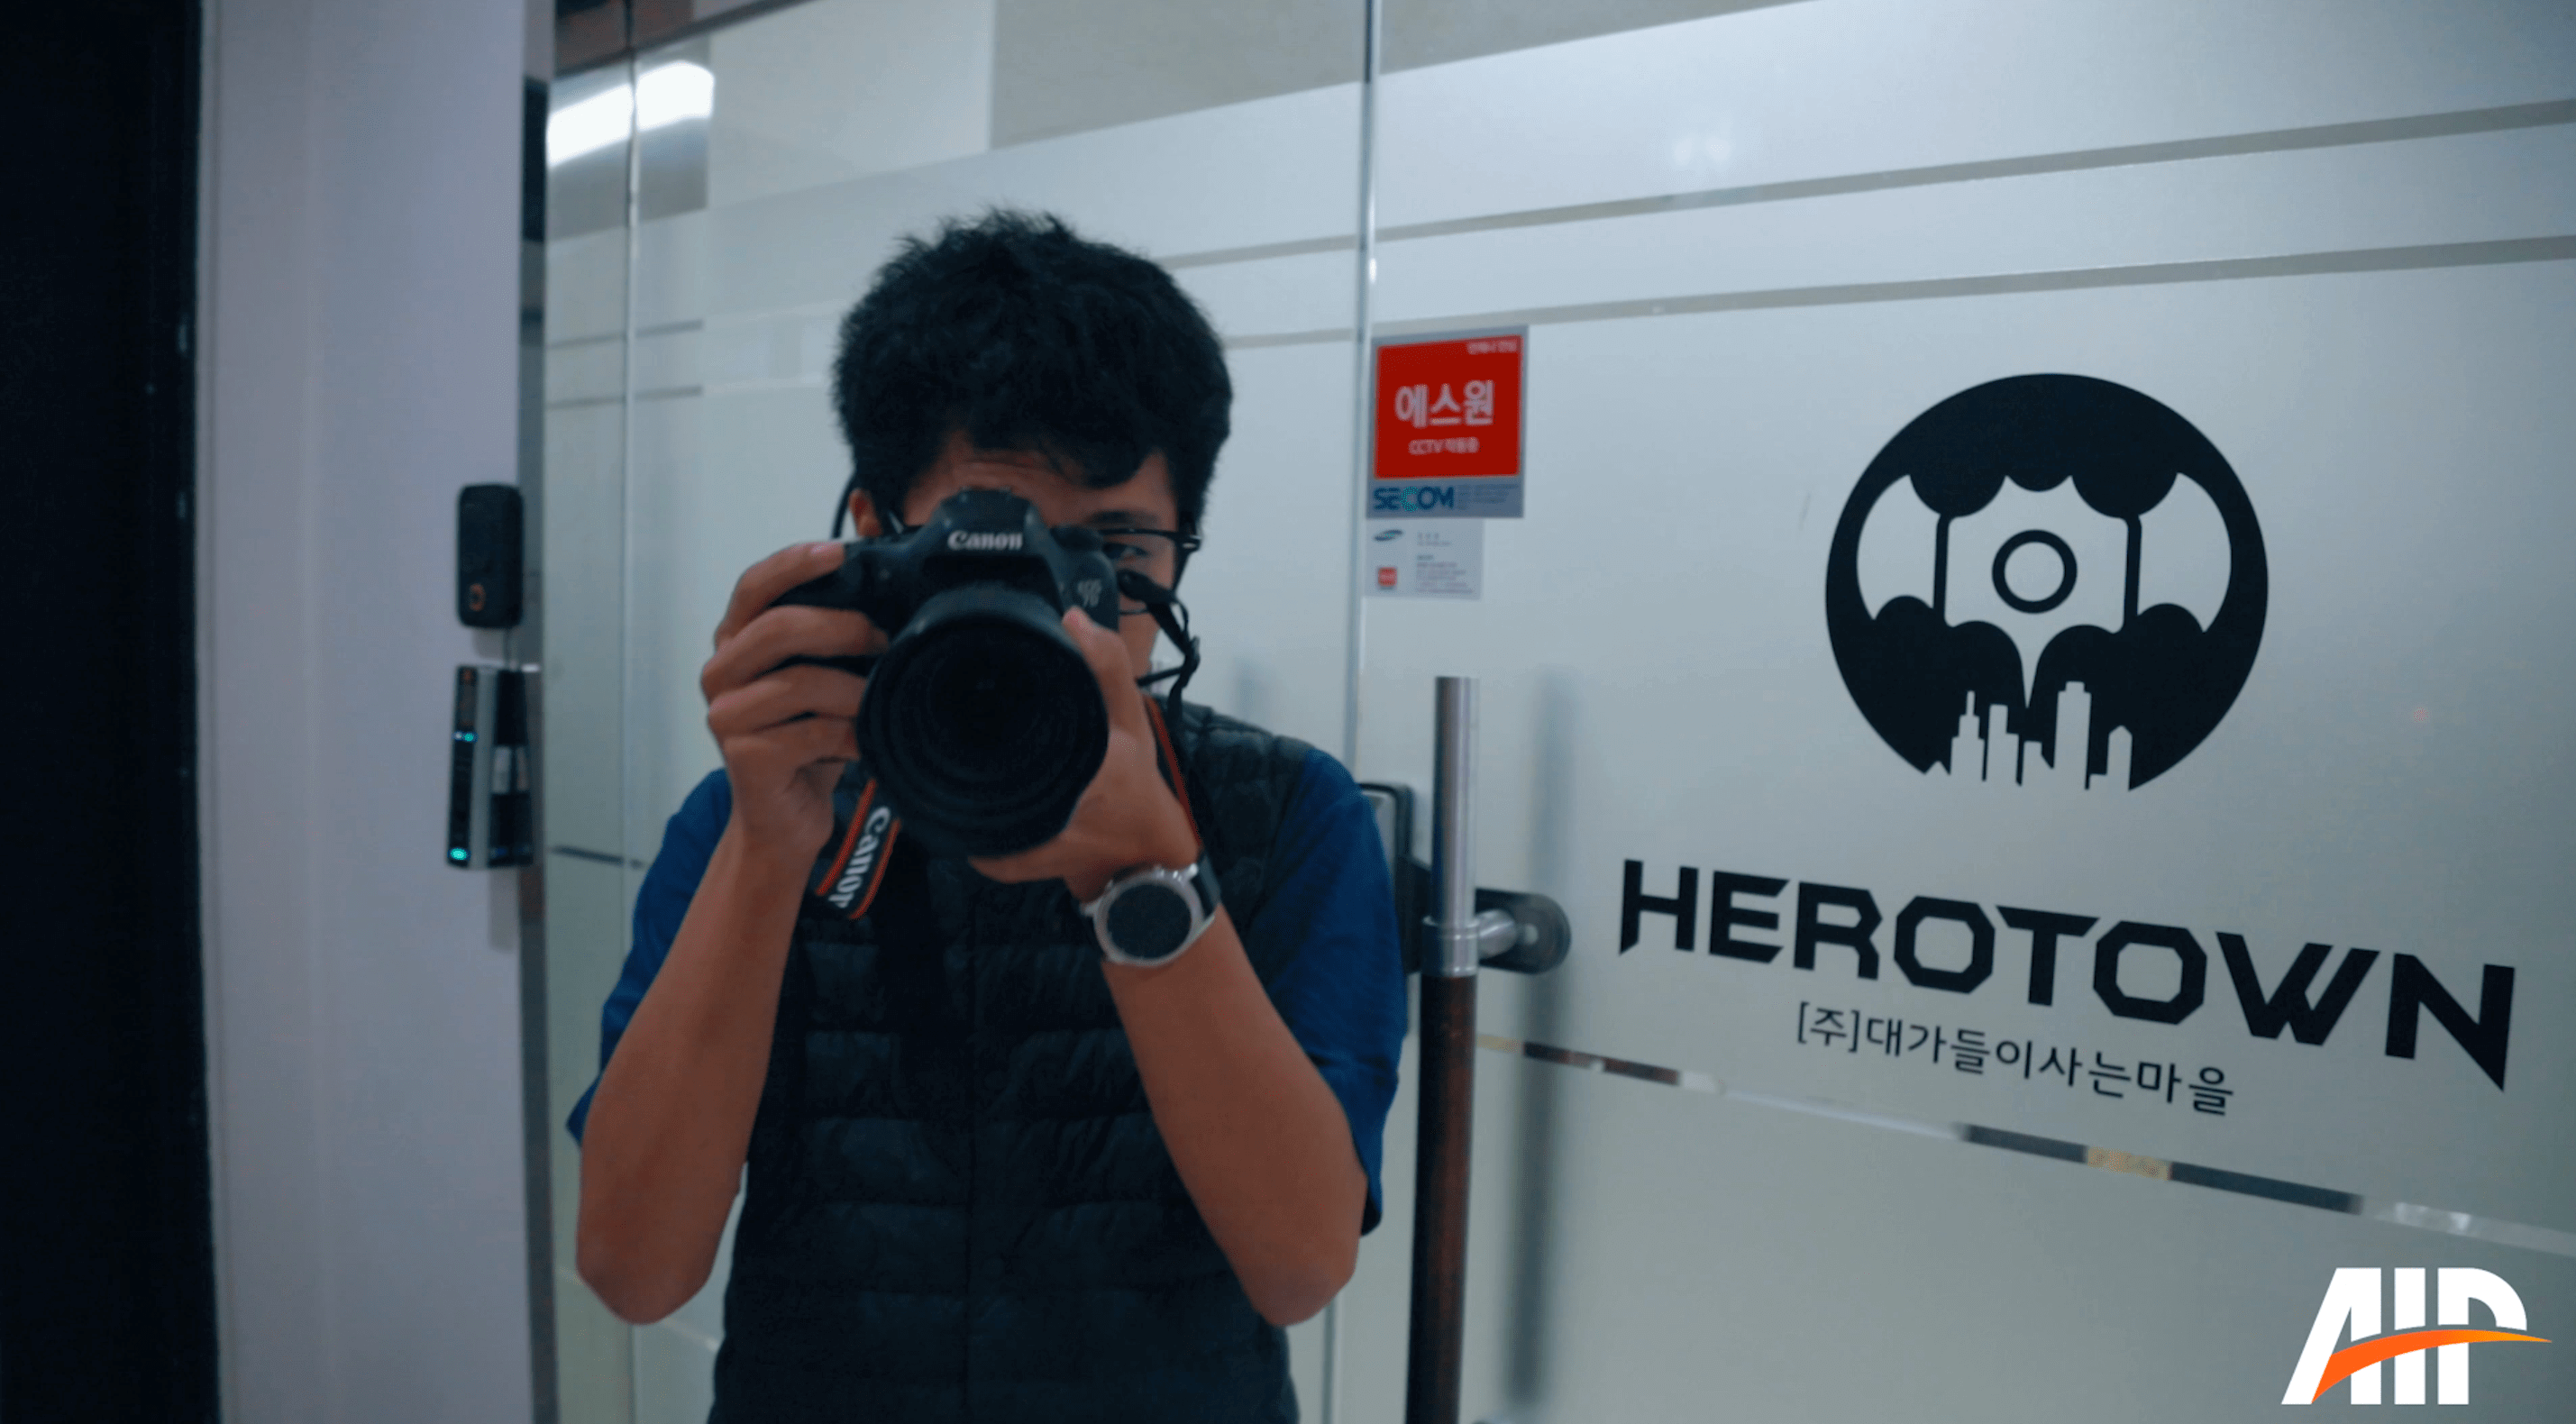 AIP - Jared Lau | Photography Internship in Seoul, South Korea